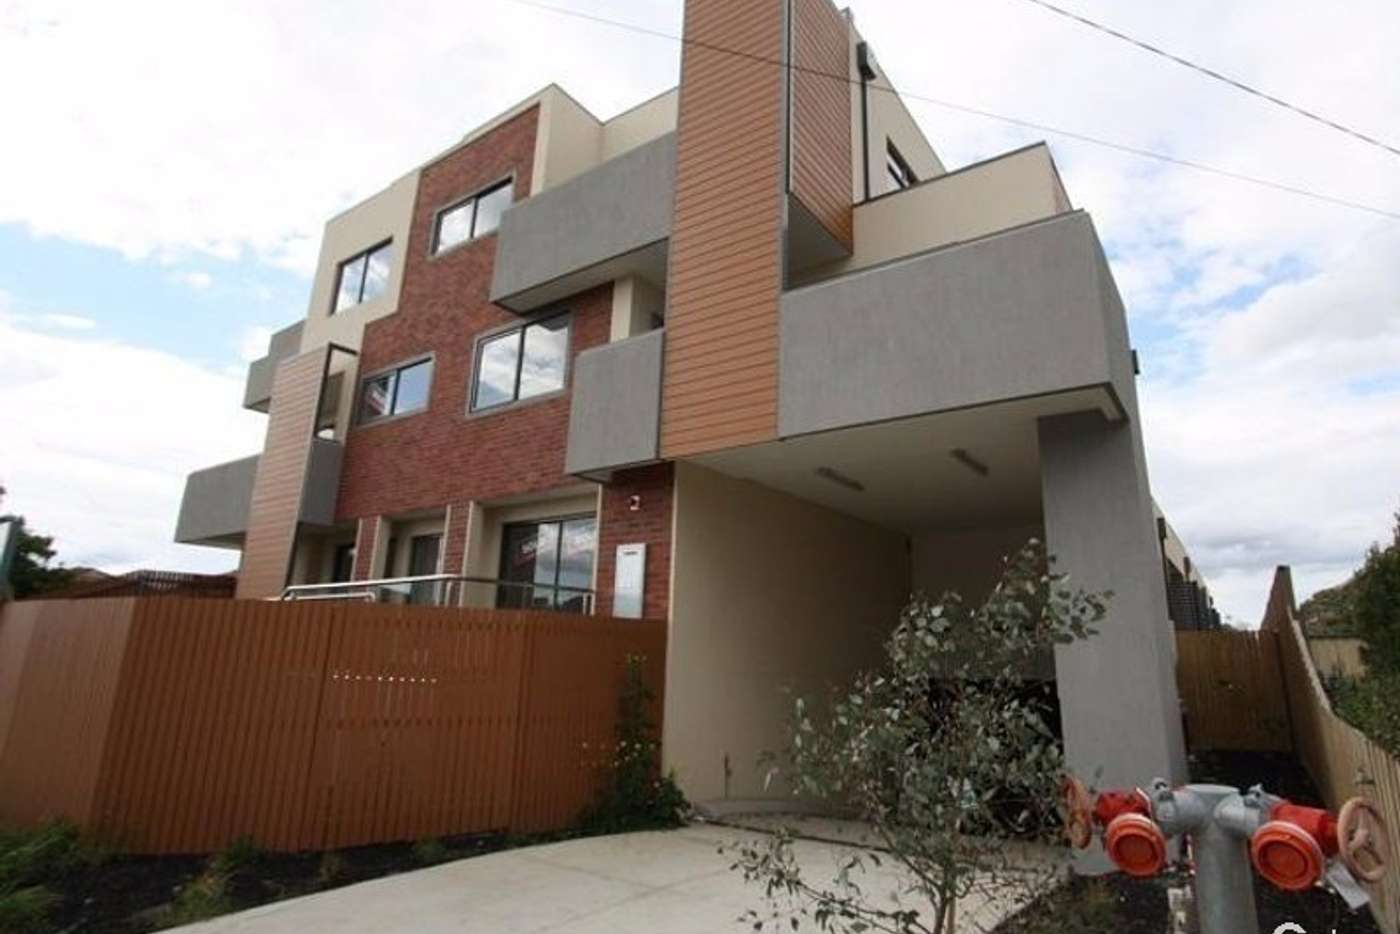 Main view of Homely apartment listing, 5/29 Albert Avenue, Springvale VIC 3171